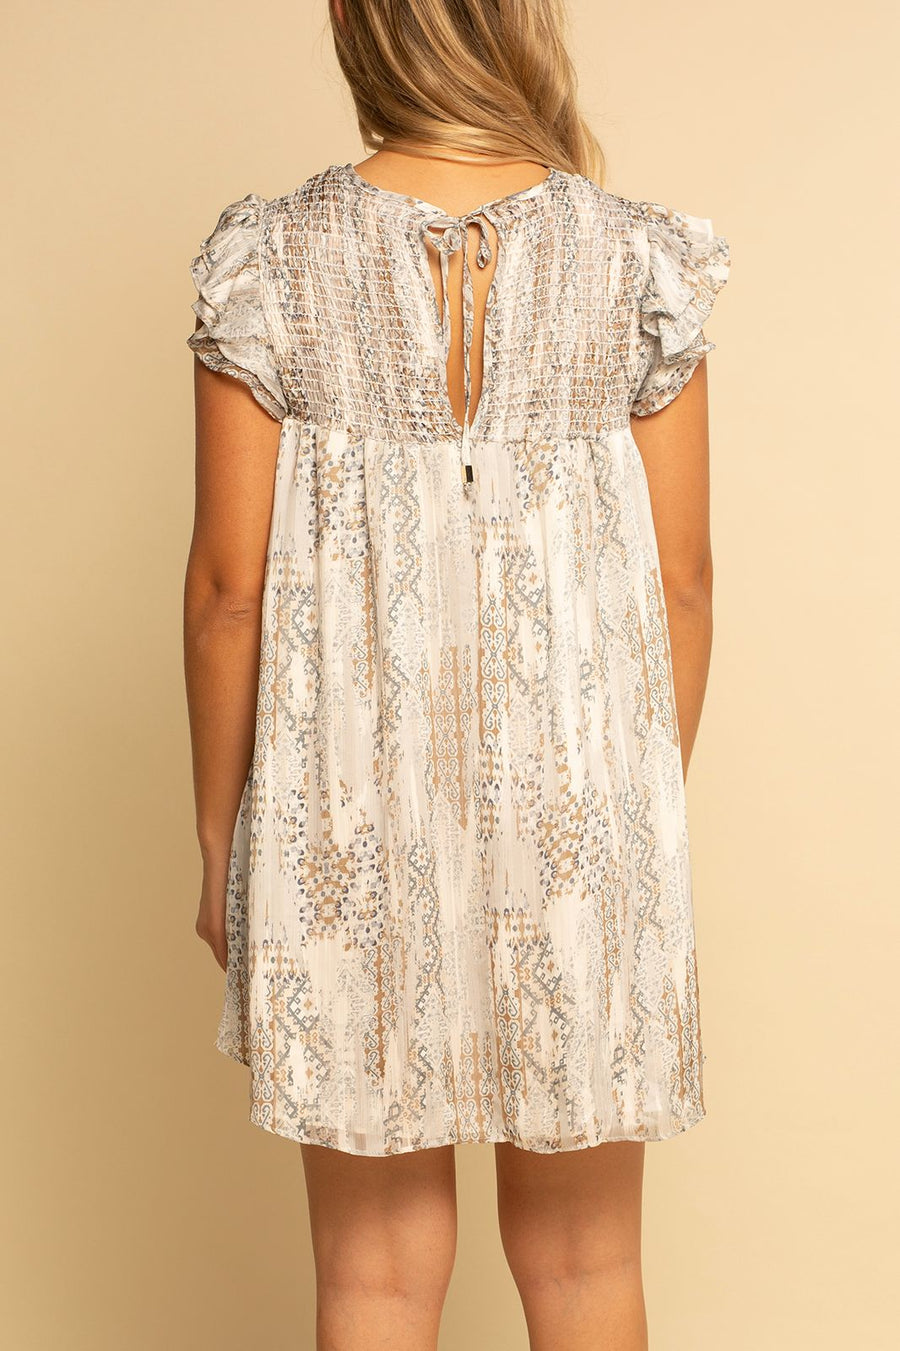 Smocked Top Dress -  Fall Paisley